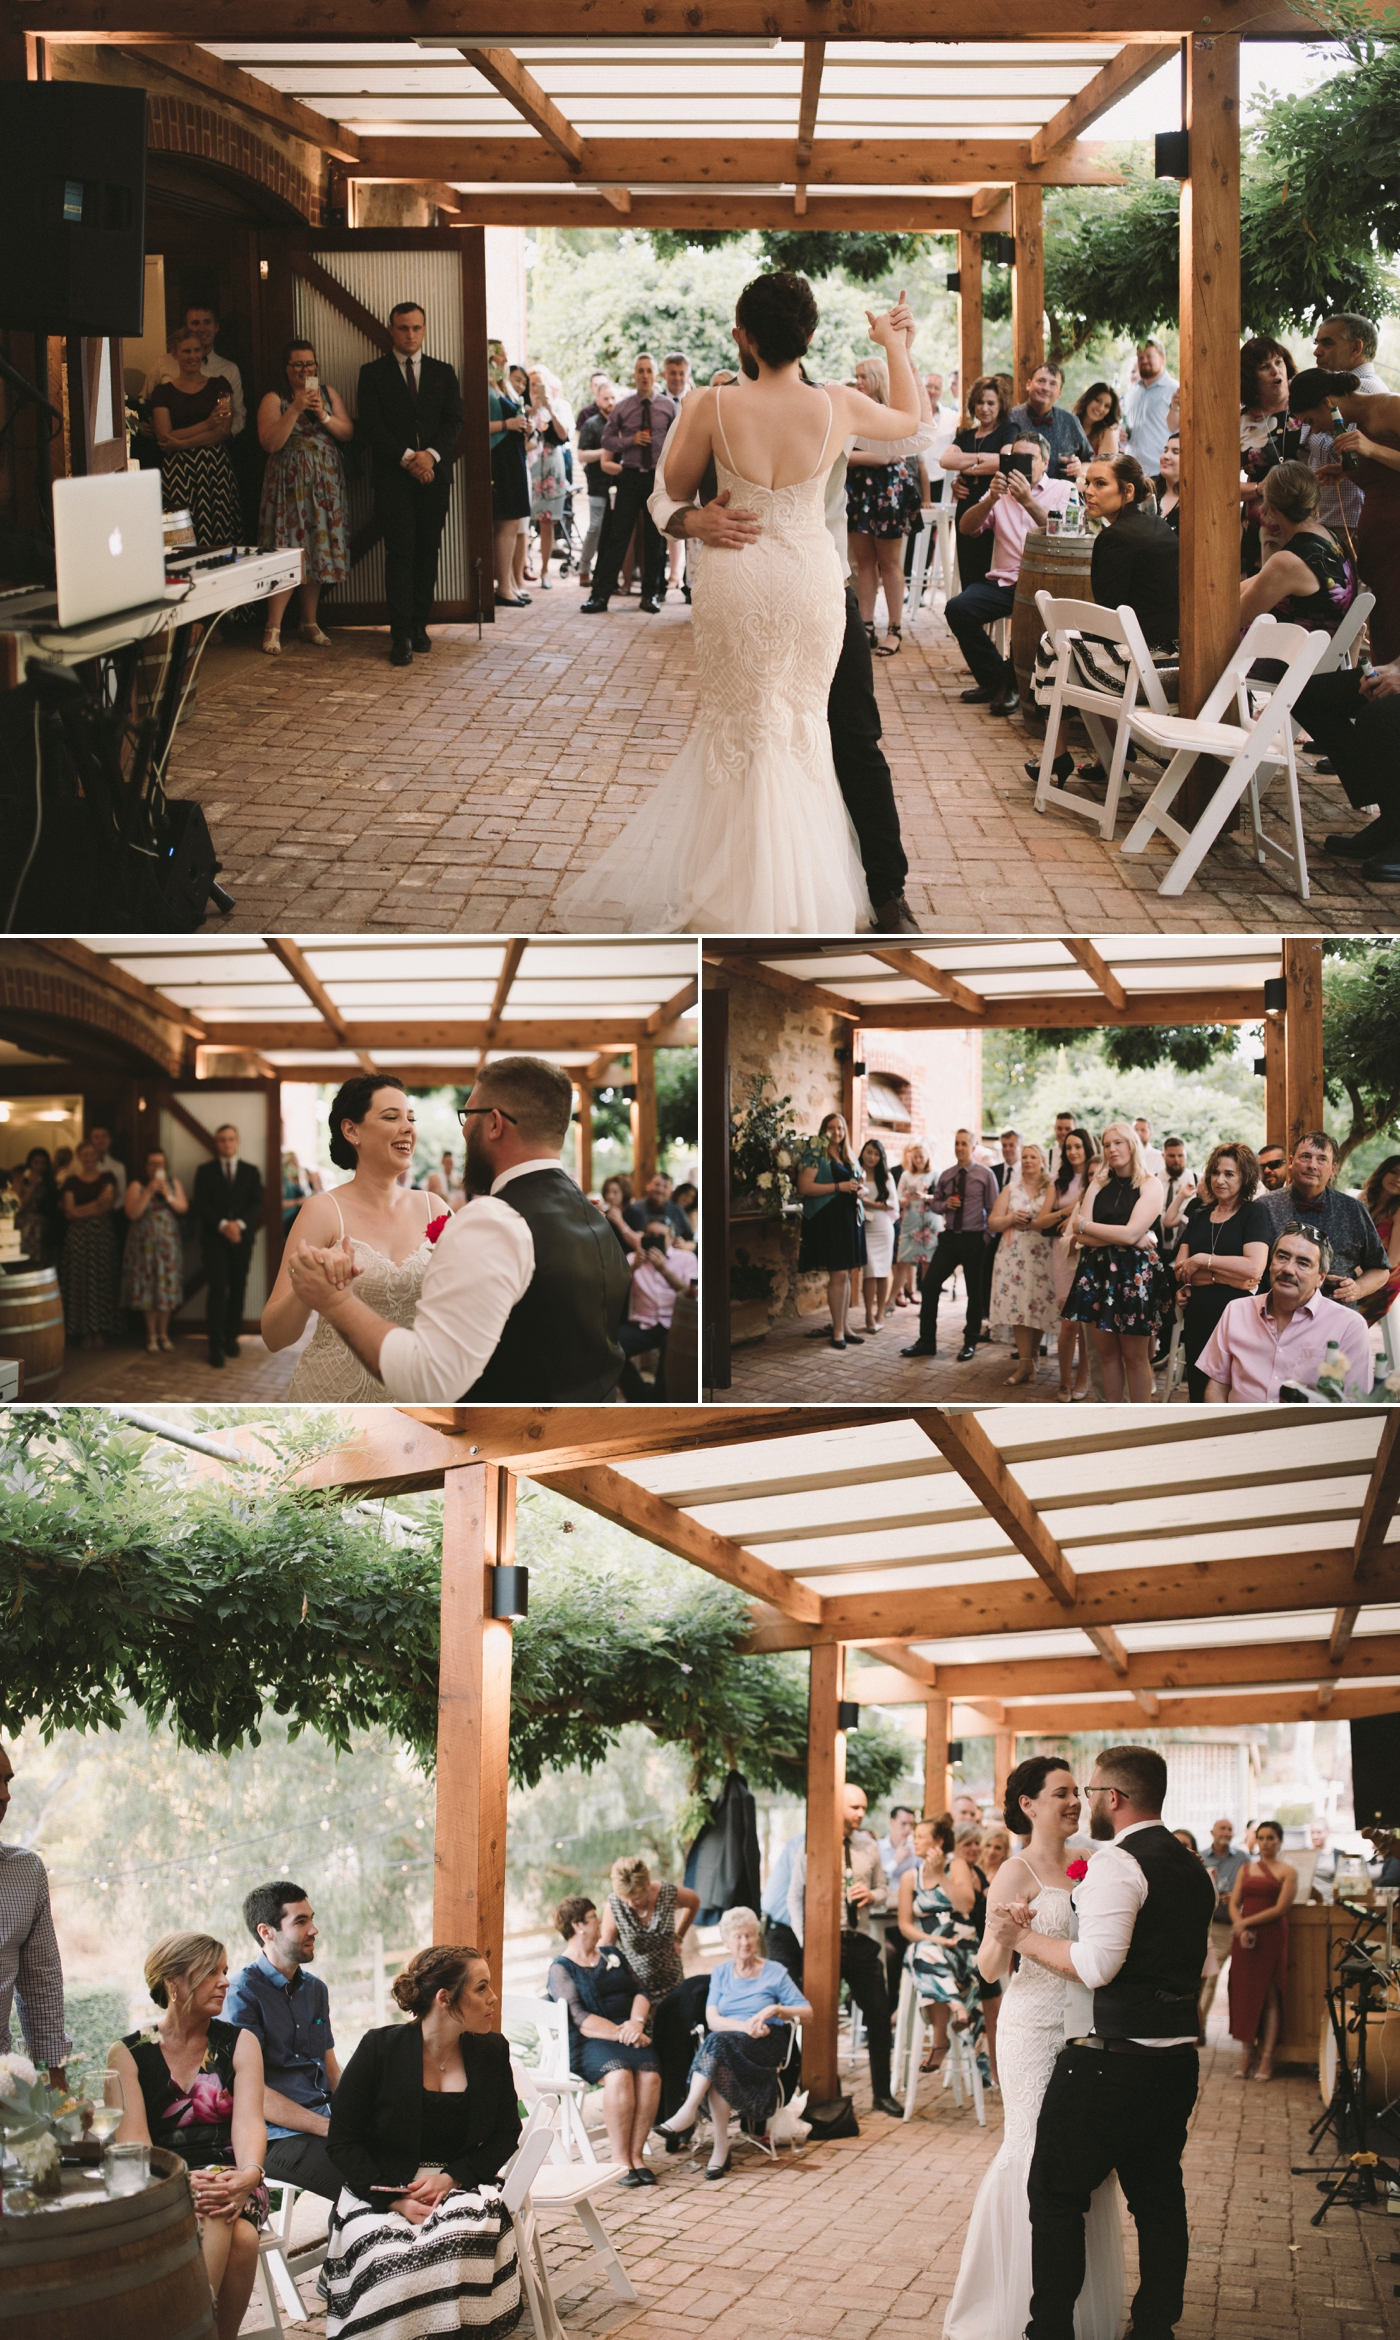 Emma & Aaron - Marybank Estate Wedding - Natural Wedding Photography in Adelaide - www.katherineschultzphotography.com_0068.jpg